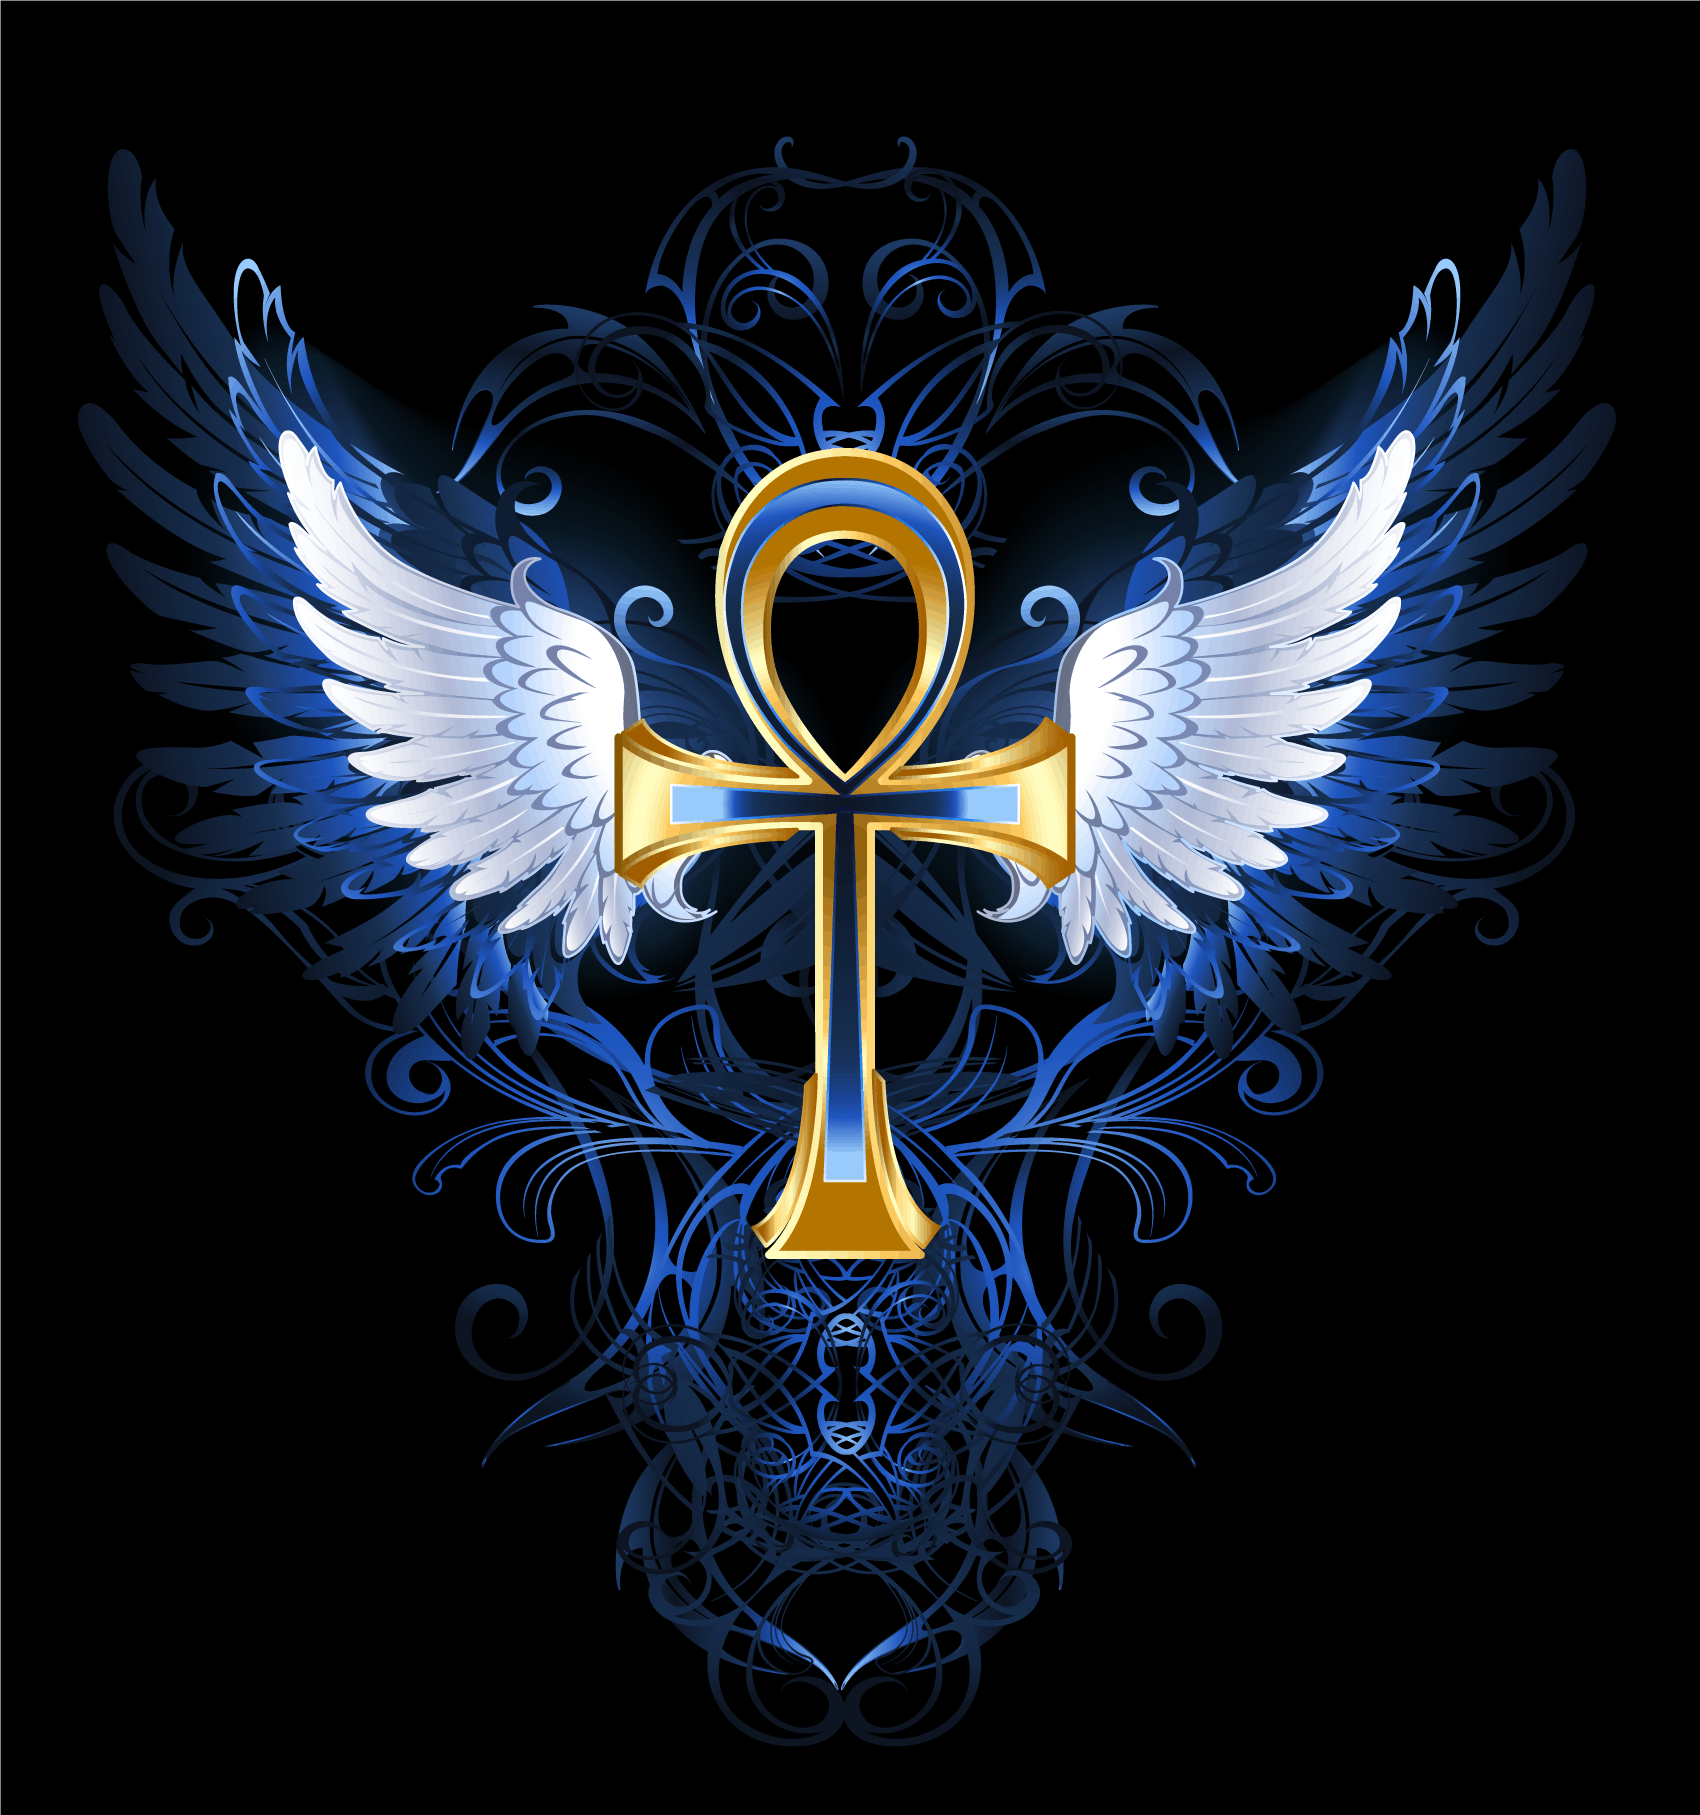 Ankh the Ancient Symbol from Egypt